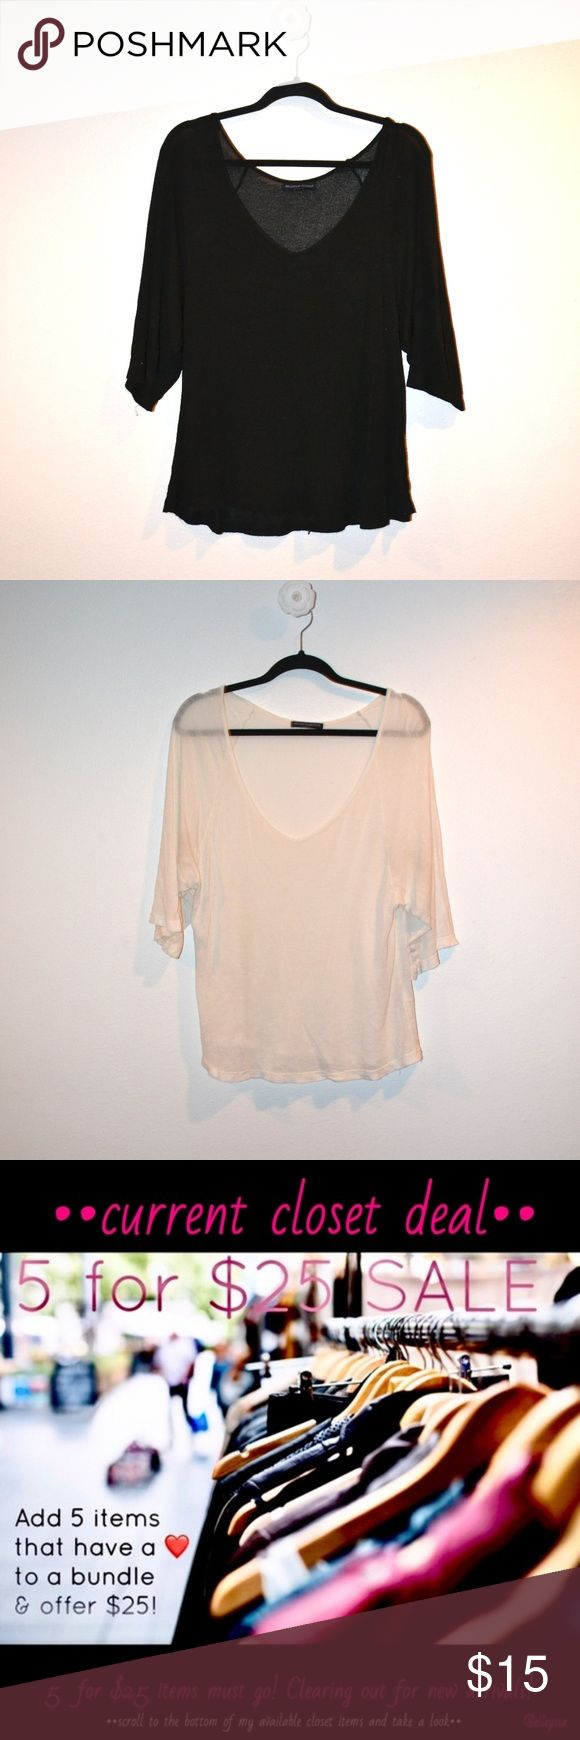 ❤️••brandy melville sheer batwing tops•• Brandy Melville, both one size. Black and off-white available. Excellent condition, some pilling. Super flowy and sheer, super cute with a bralette!  This is a 5 for $25 item in my closet! Bundle up 5 items from my closet with a ❤️•• in the title and offer $25. Check out with other items I have included in my 5 for $25 sale! Clearing out for spring boutique items! Brandy Melville Tops Tees - Short Sleeve